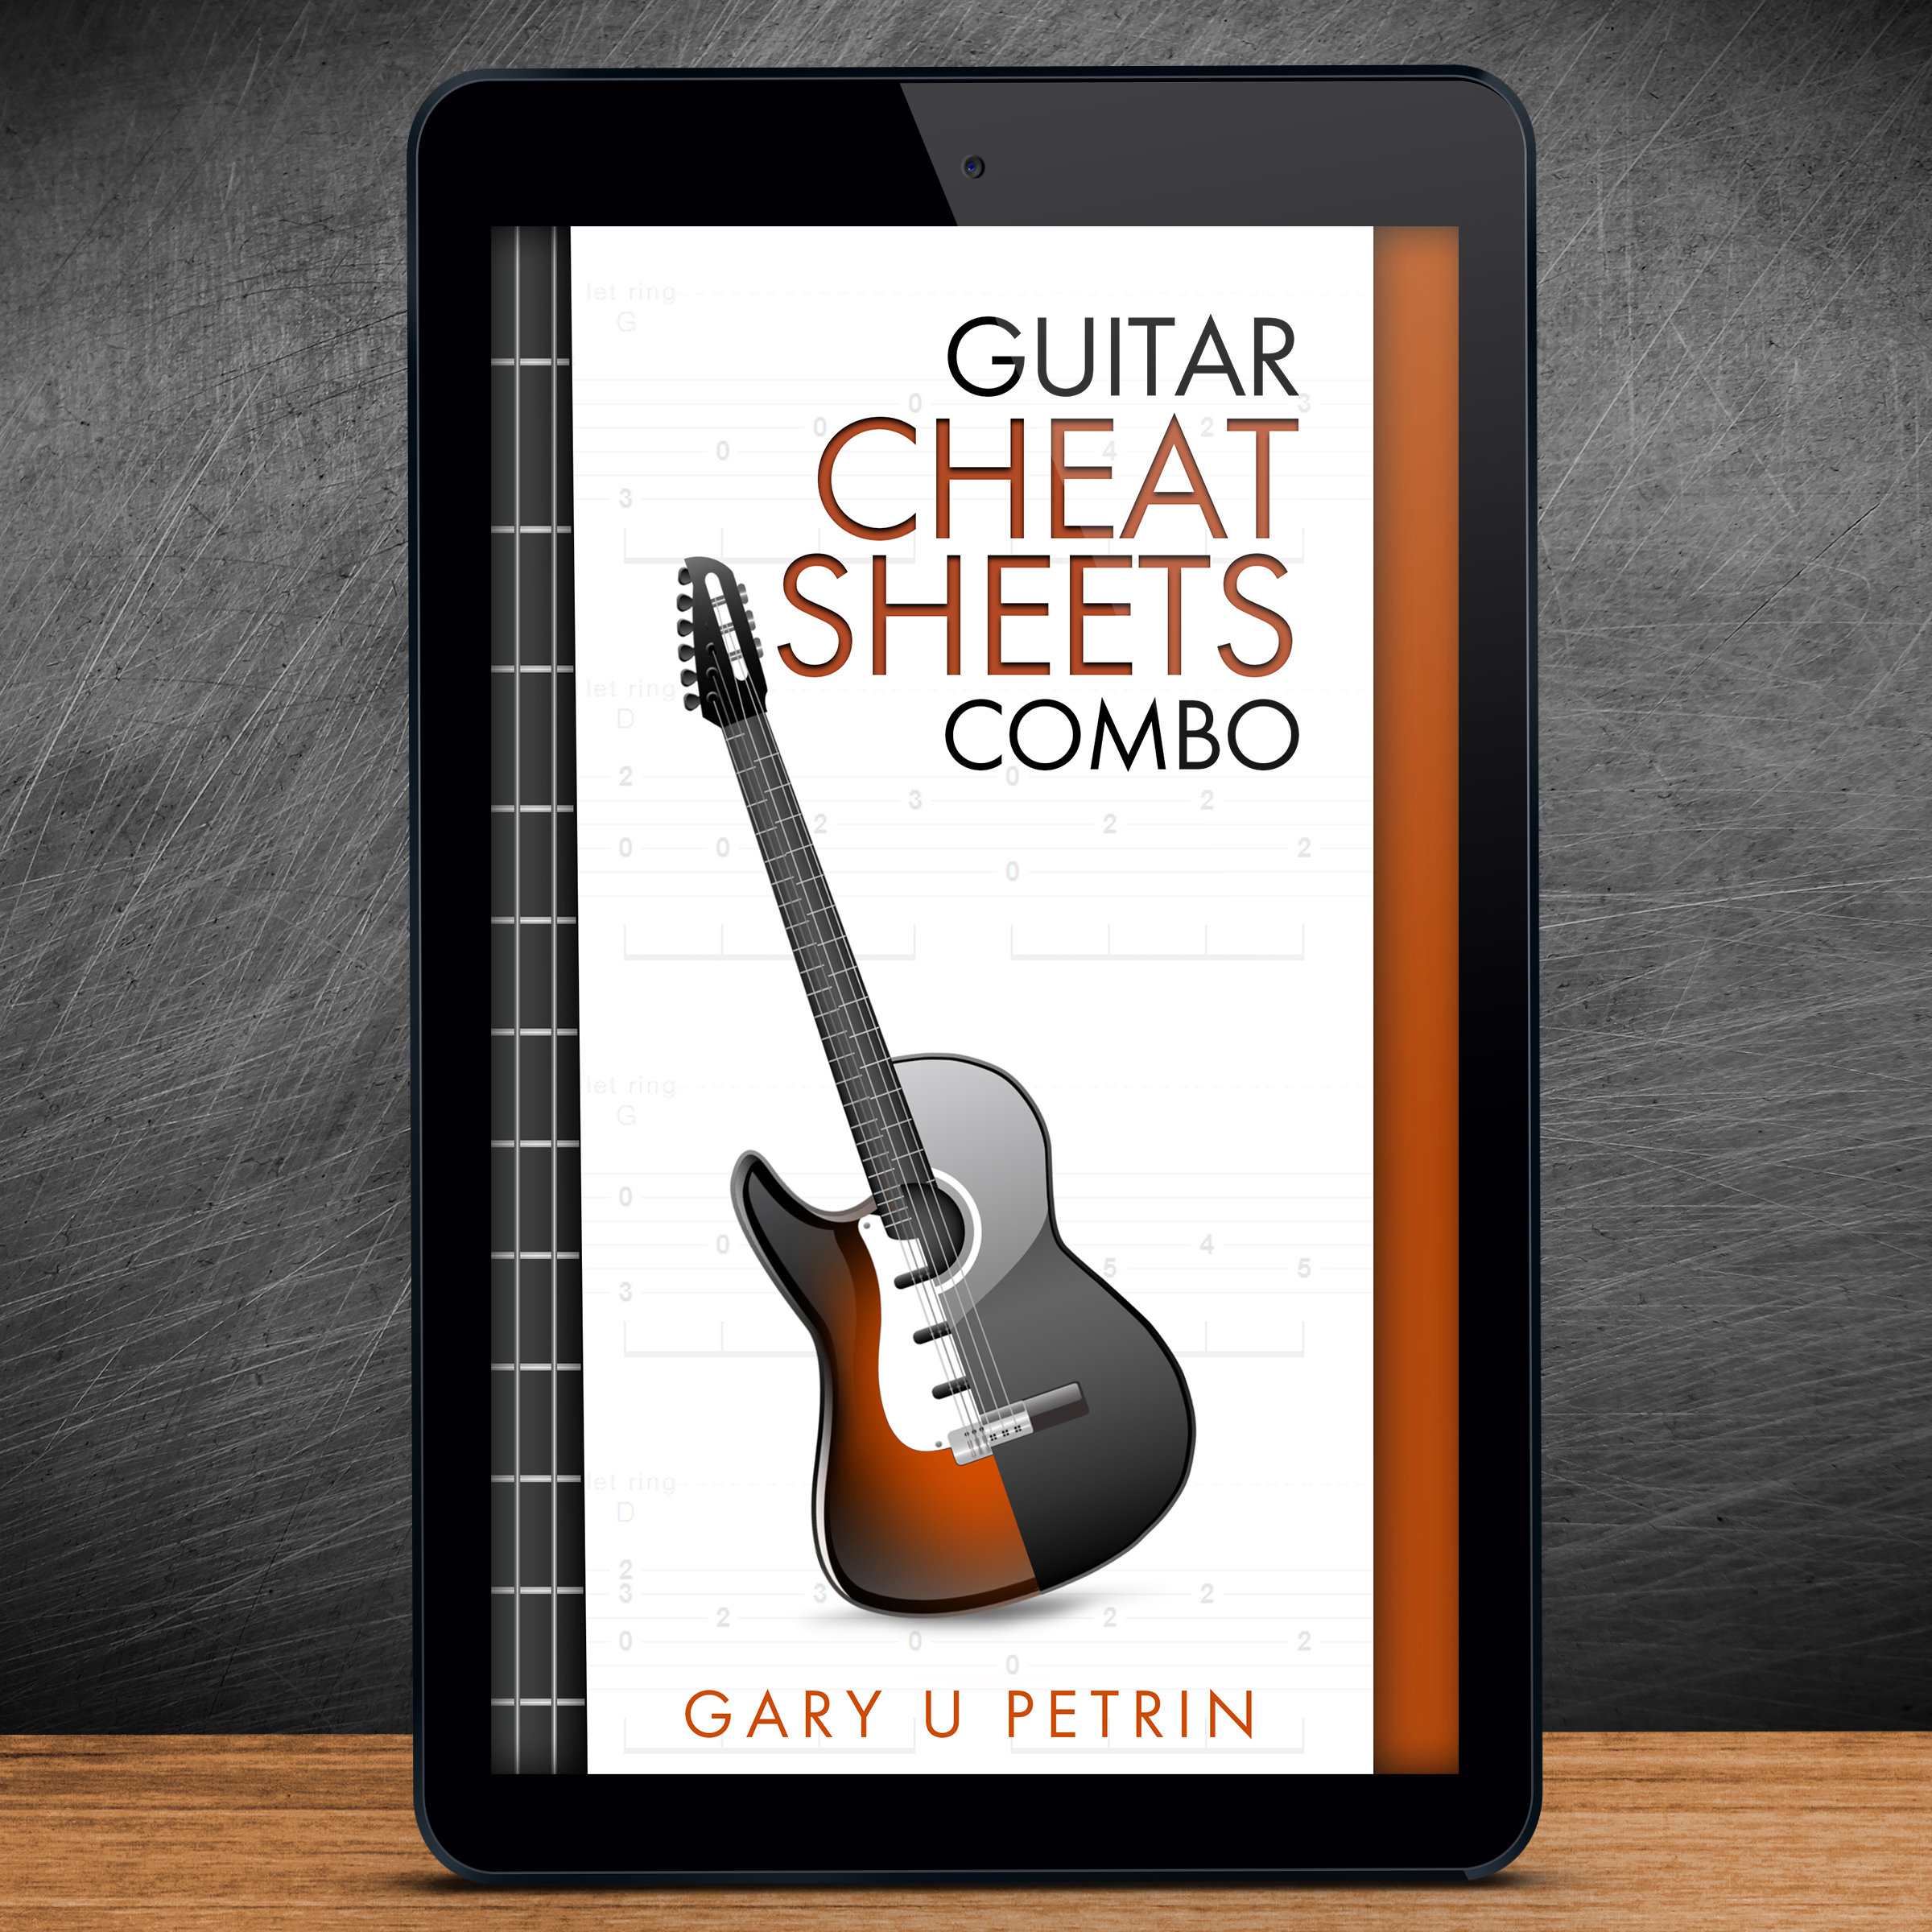 Guitar Cheat Sheets Combo - Download